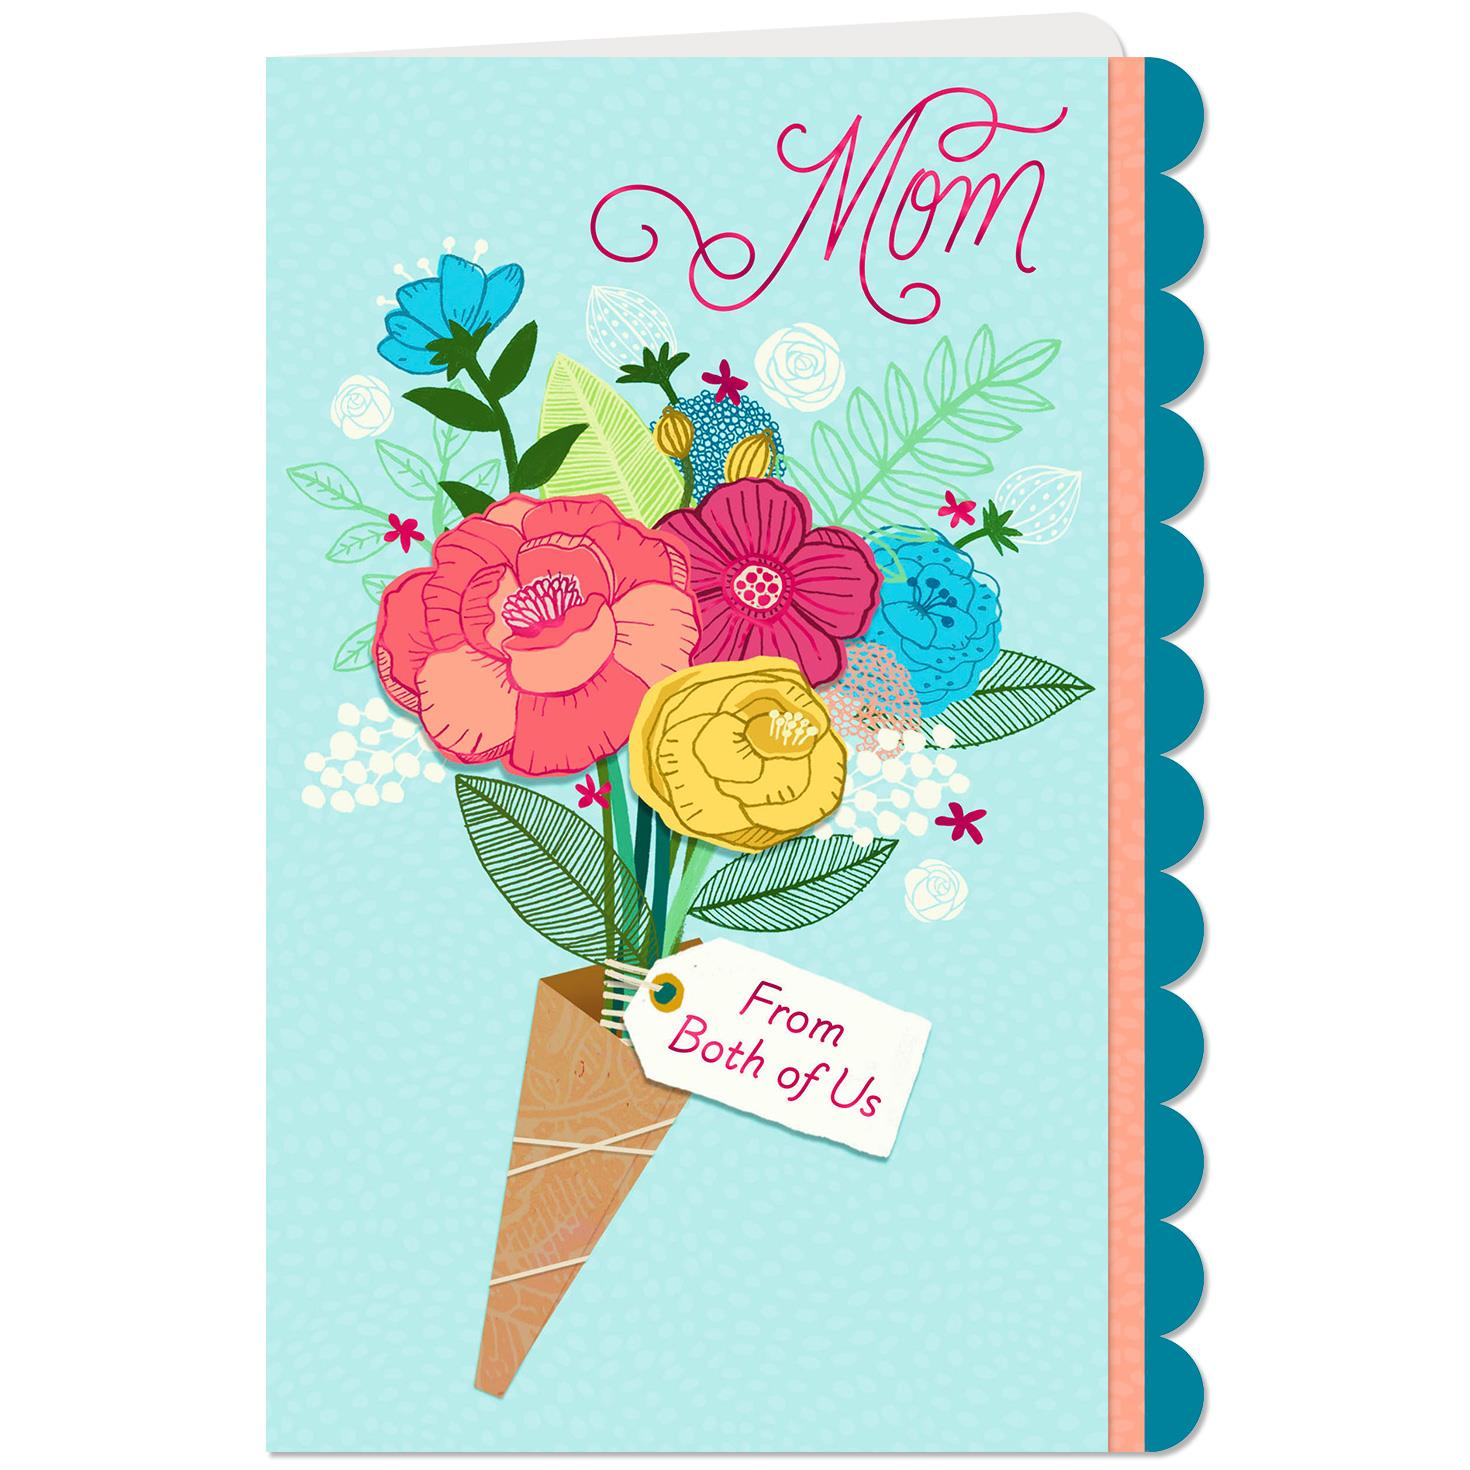 Flower Bouquet Thinking Of You Birthday Card For Mom From Both